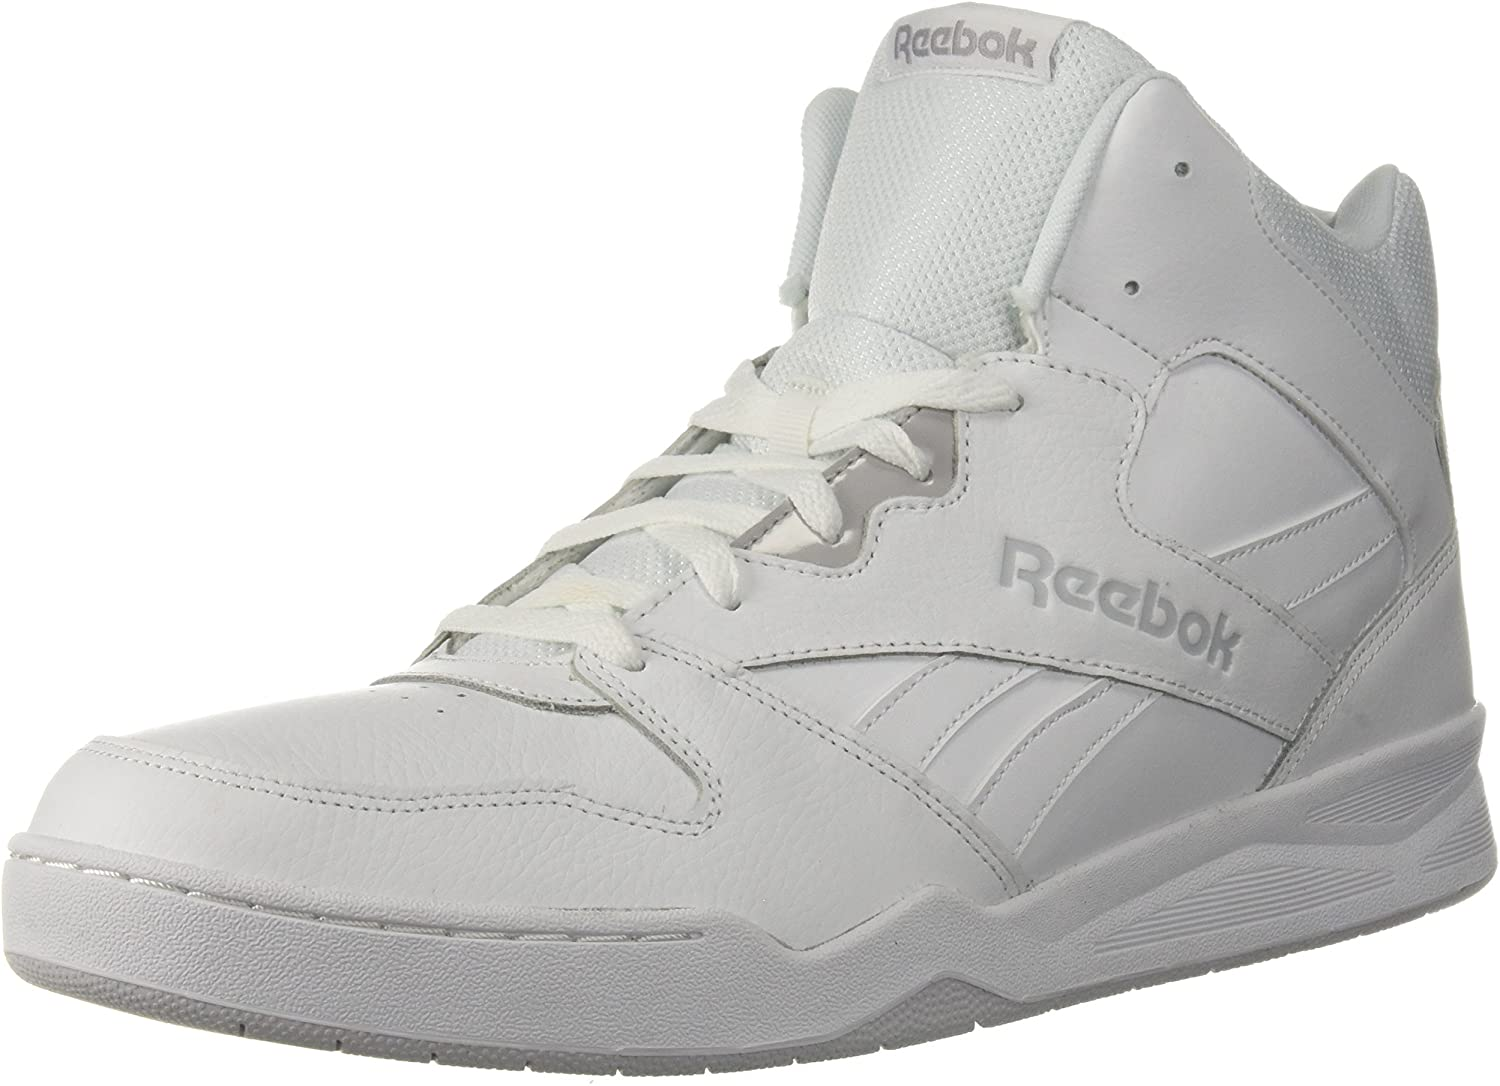 80s Costumes, Outfit Ideas- Girls and Guys Reebok Mens Royal Bb4500 Hi2 Sneaker $19.19 AT vintagedancer.com